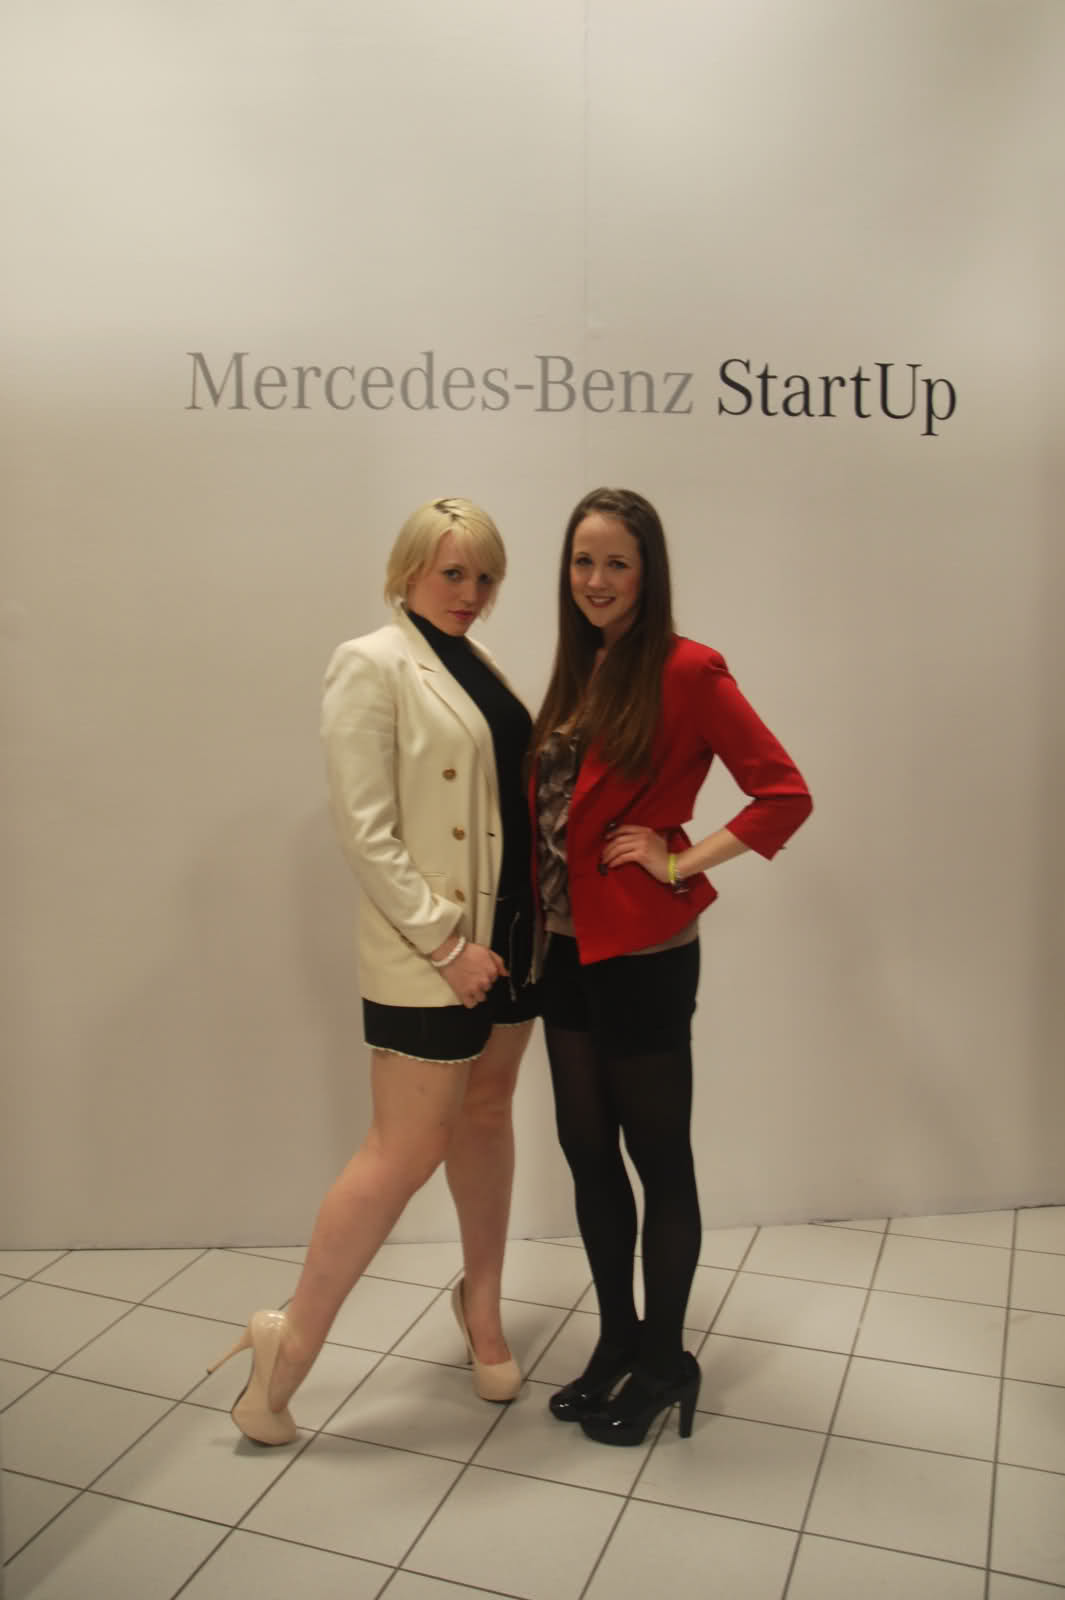 Mercedes-Benz Start Up